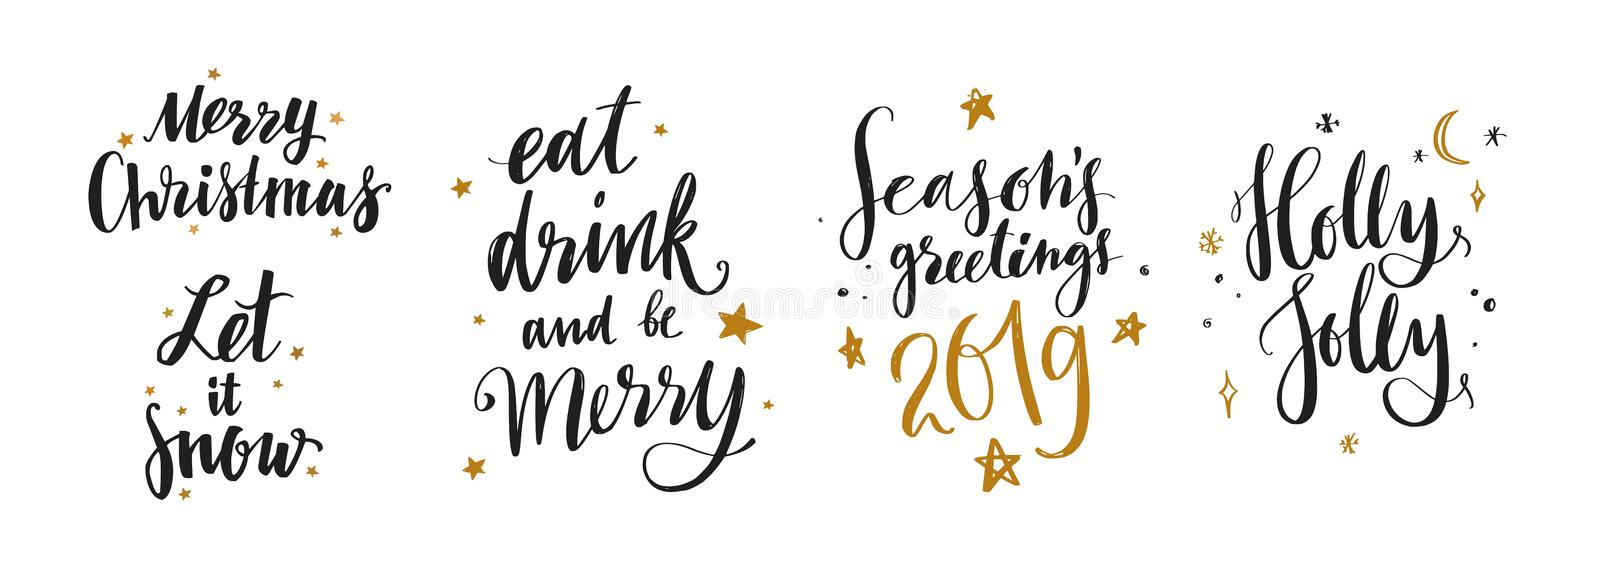 Christmas and New Year calligraphy vector phrases 13 stock illustration